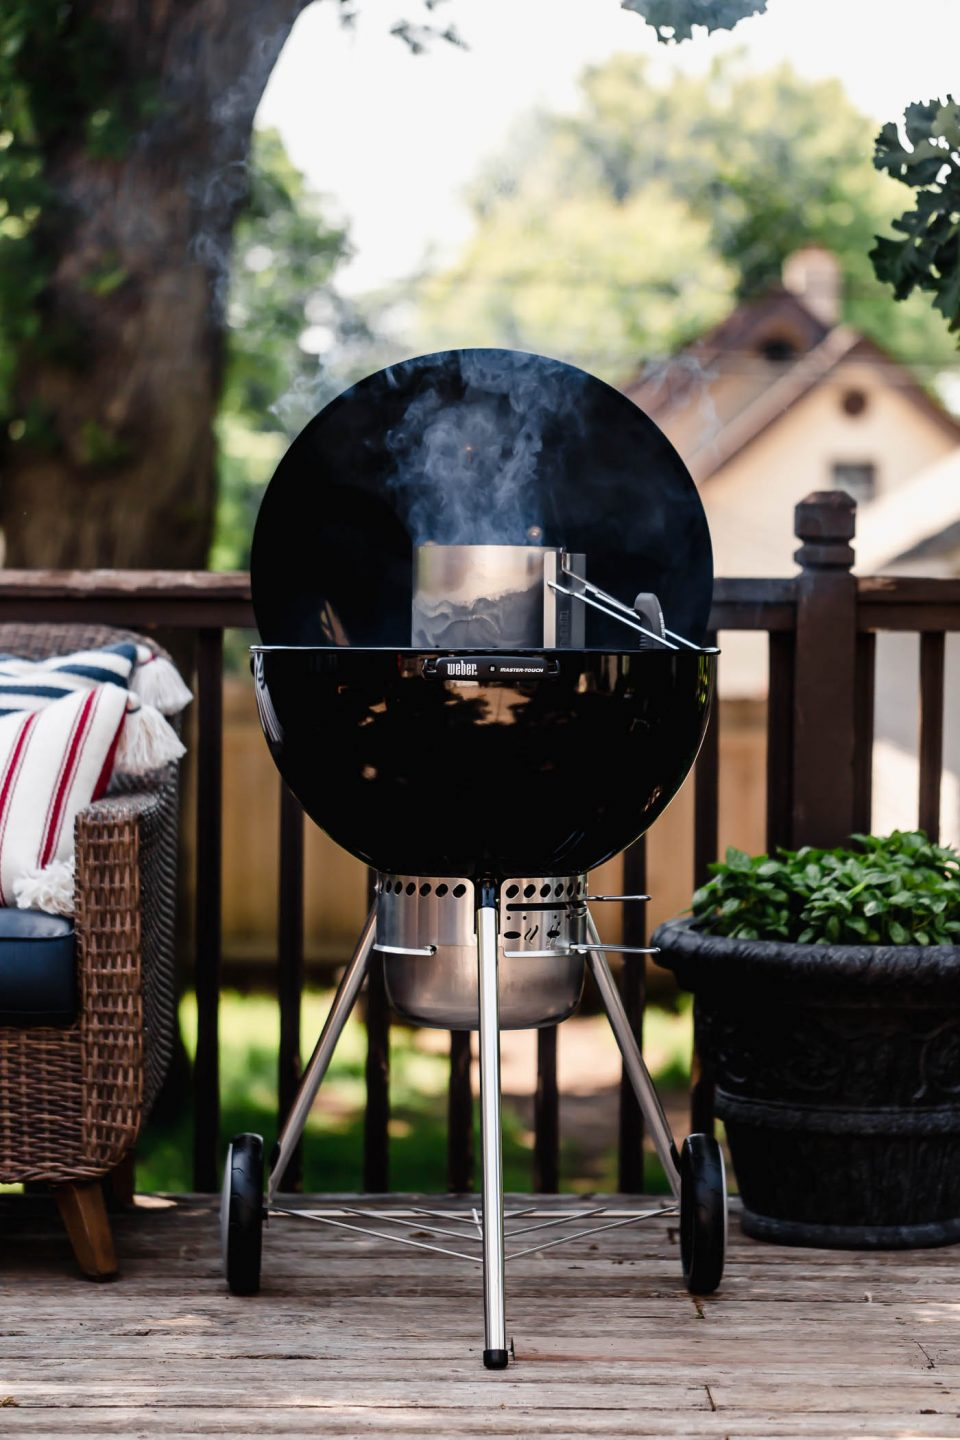 A 22-inch original weber grill sitting on a deck open to show a charcoal chimney with smoke coming out of it